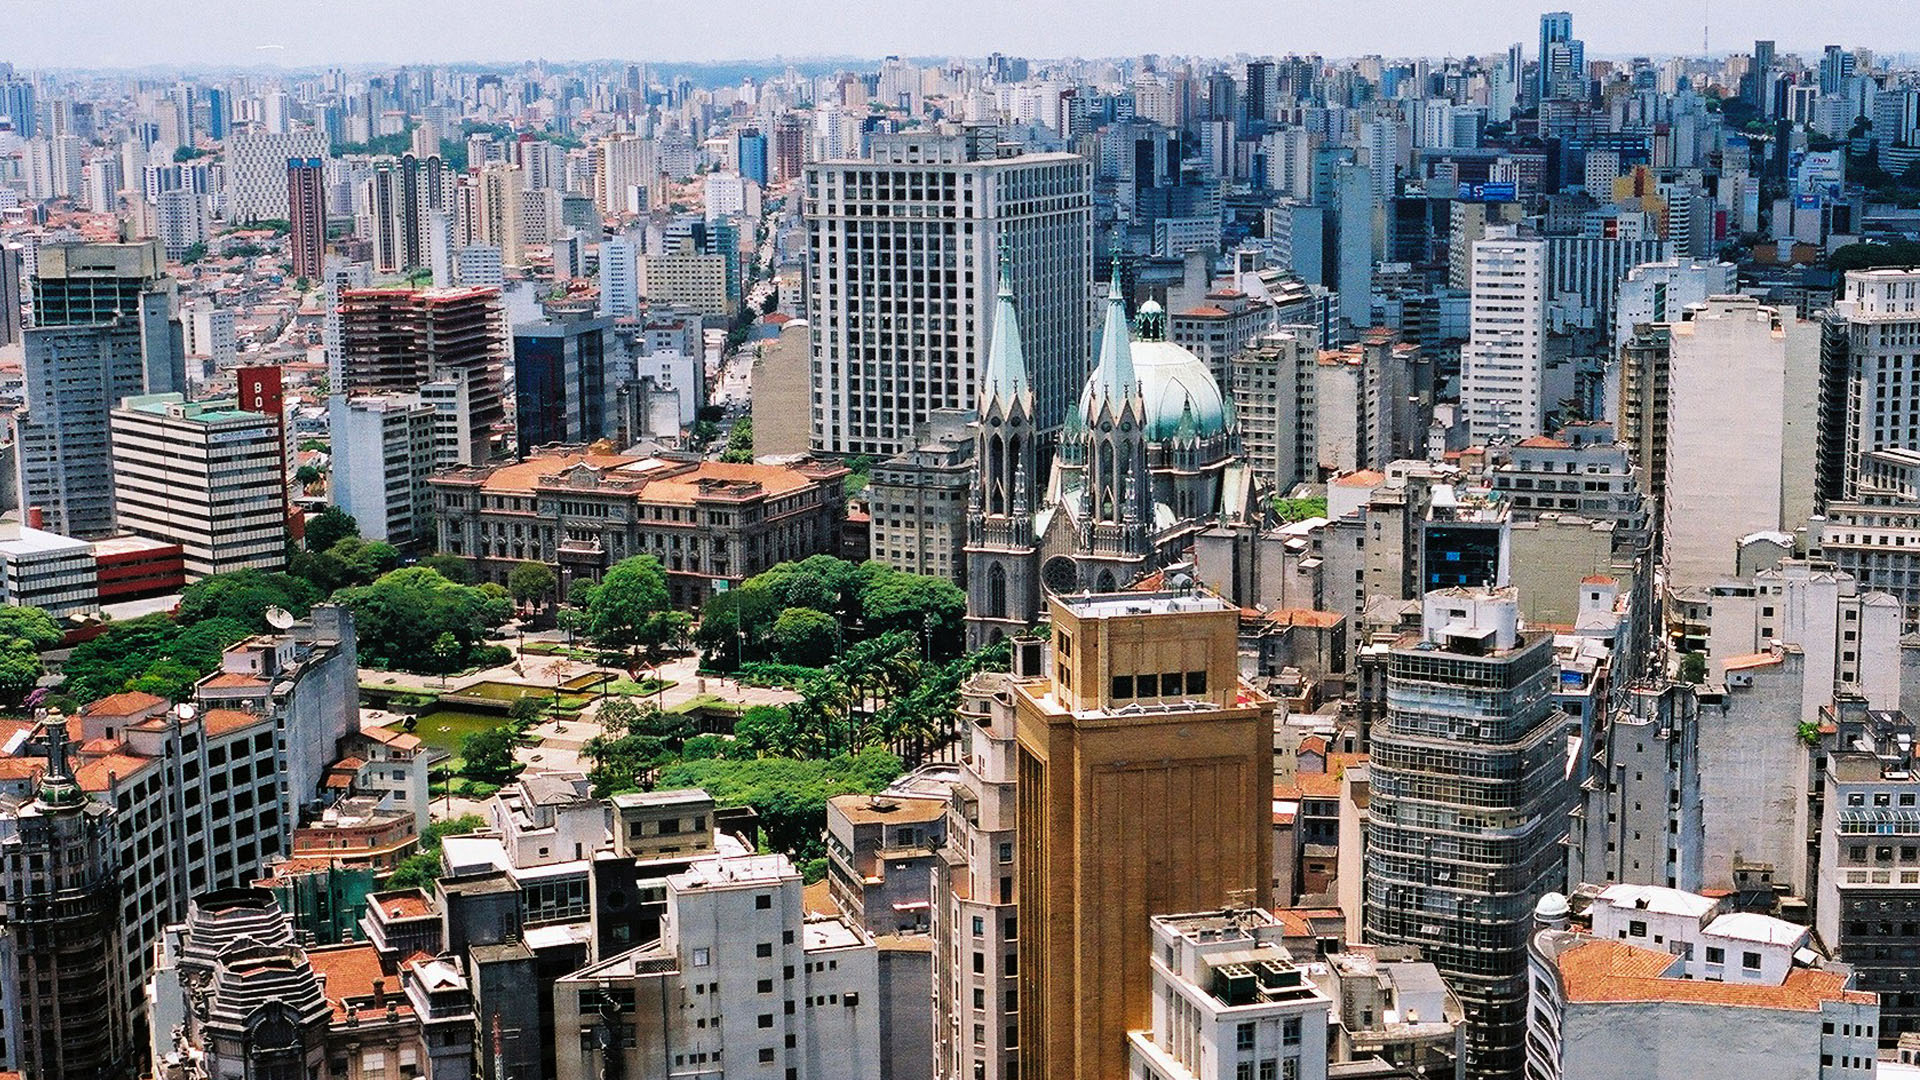 City-of-Sao-Paulo-Brazil